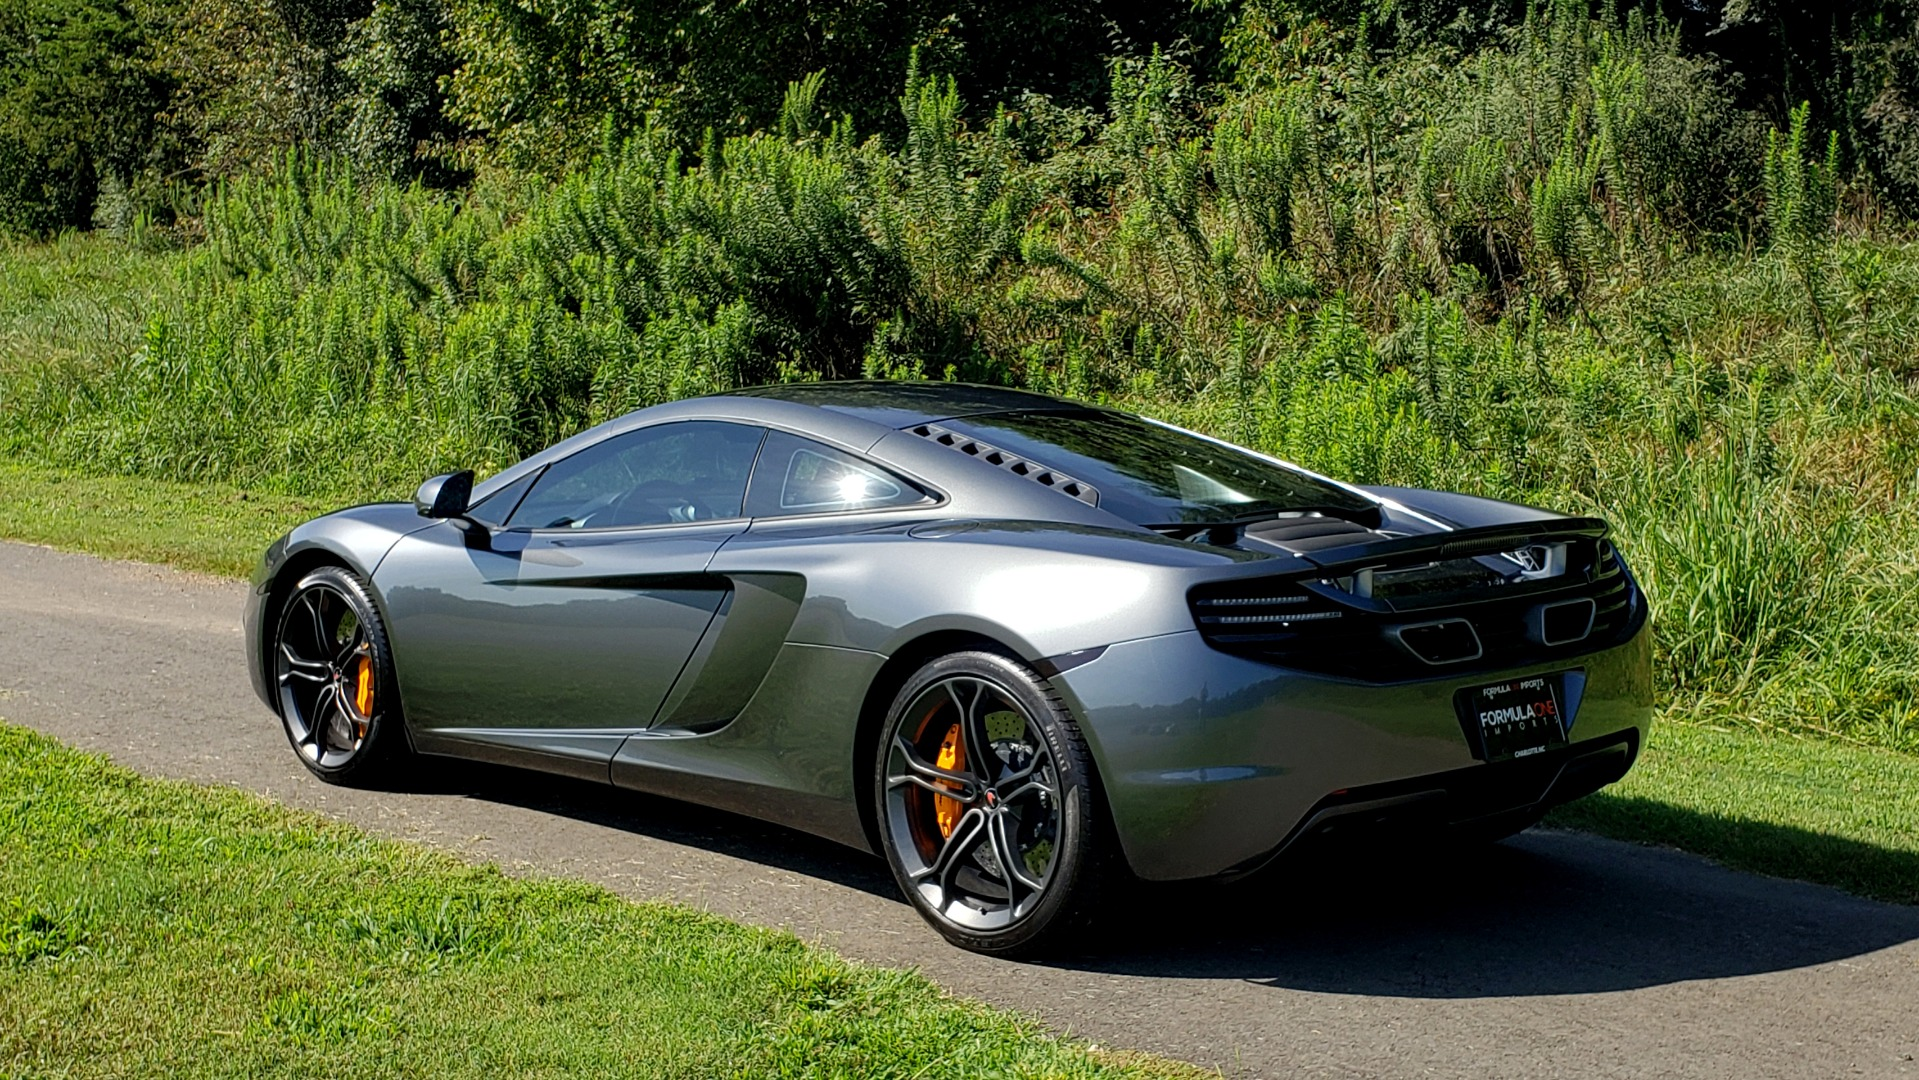 Used 2012 McLaren MP4-12C COUPE / 3.8 L V8 592HP / AUTO / NAV / CCB / LOW MILES for sale $97,999 at Formula Imports in Charlotte NC 28227 9